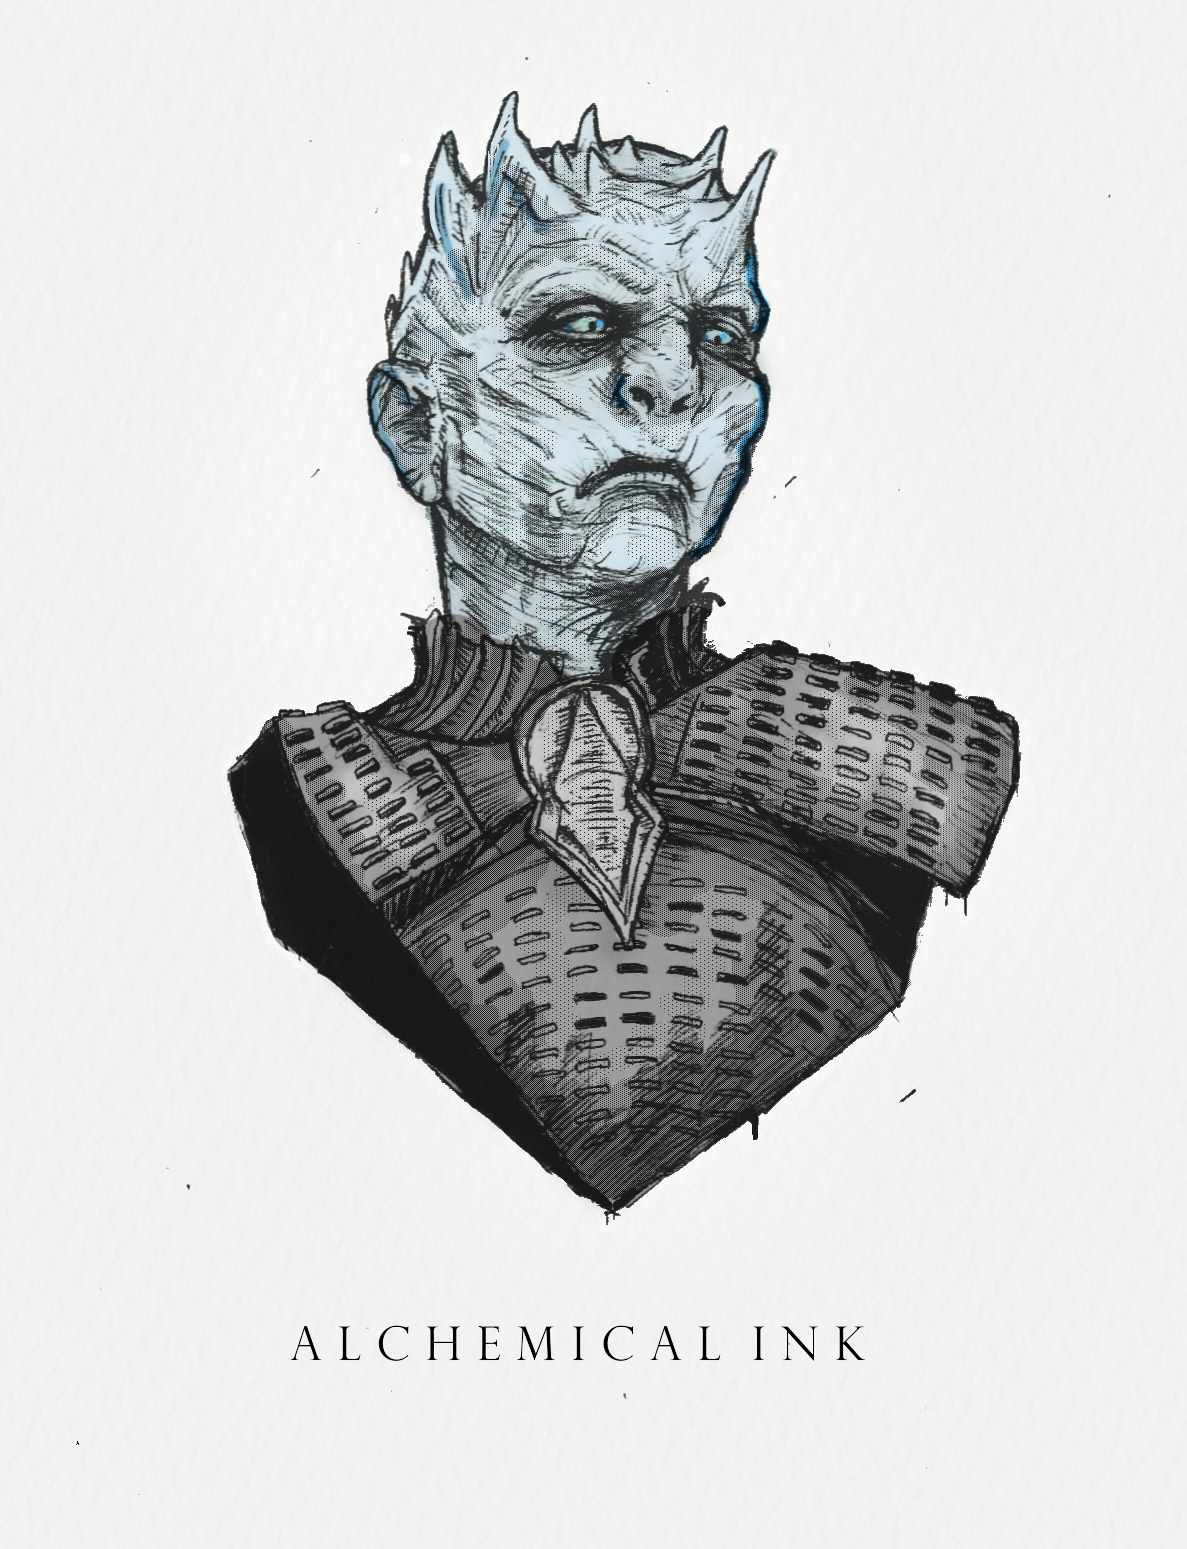 Night King By Alchemical Ink Night King Photo And Video Instagram Photo